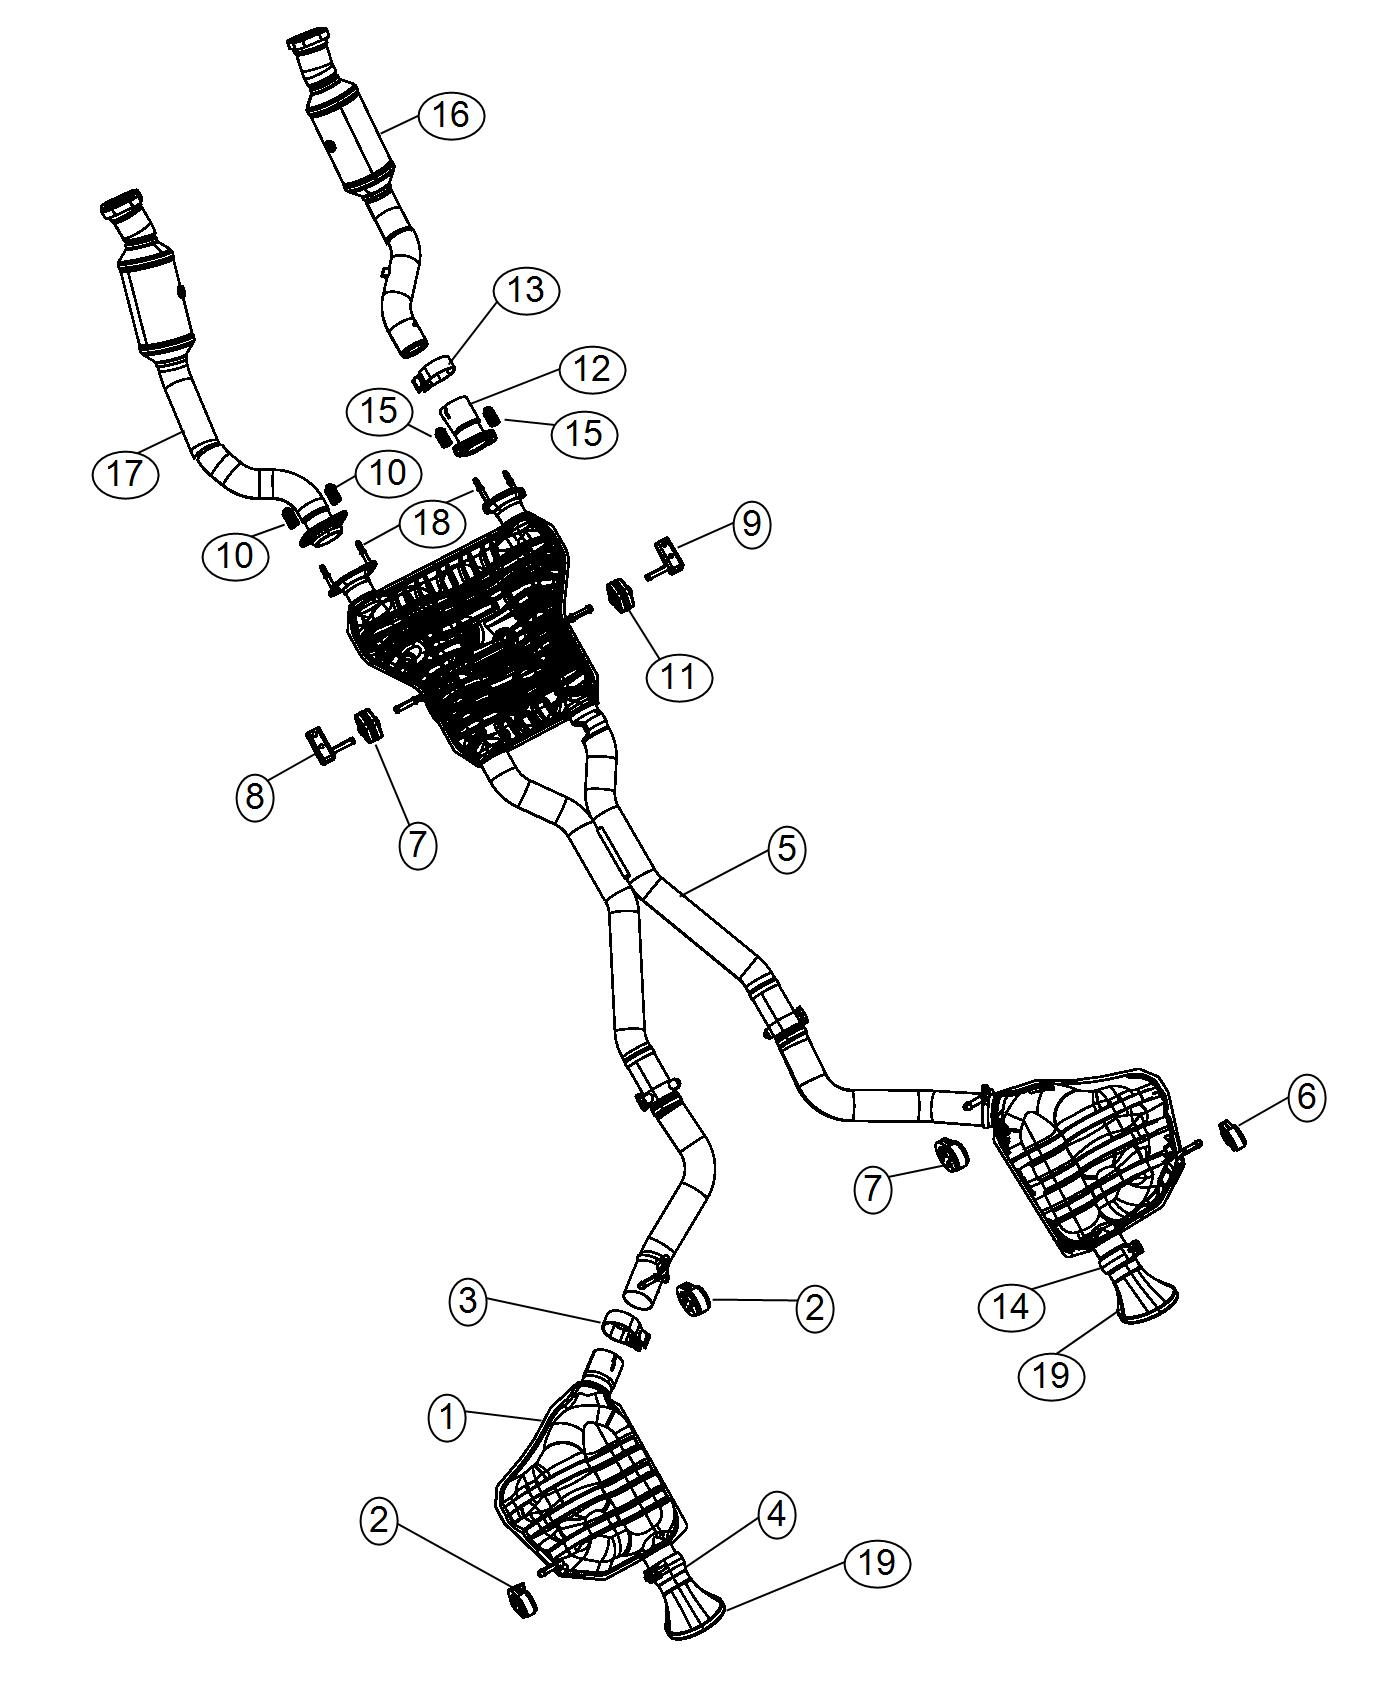 95 Chevy Corsica Exhaust Diagram - wiring diagram on the net on